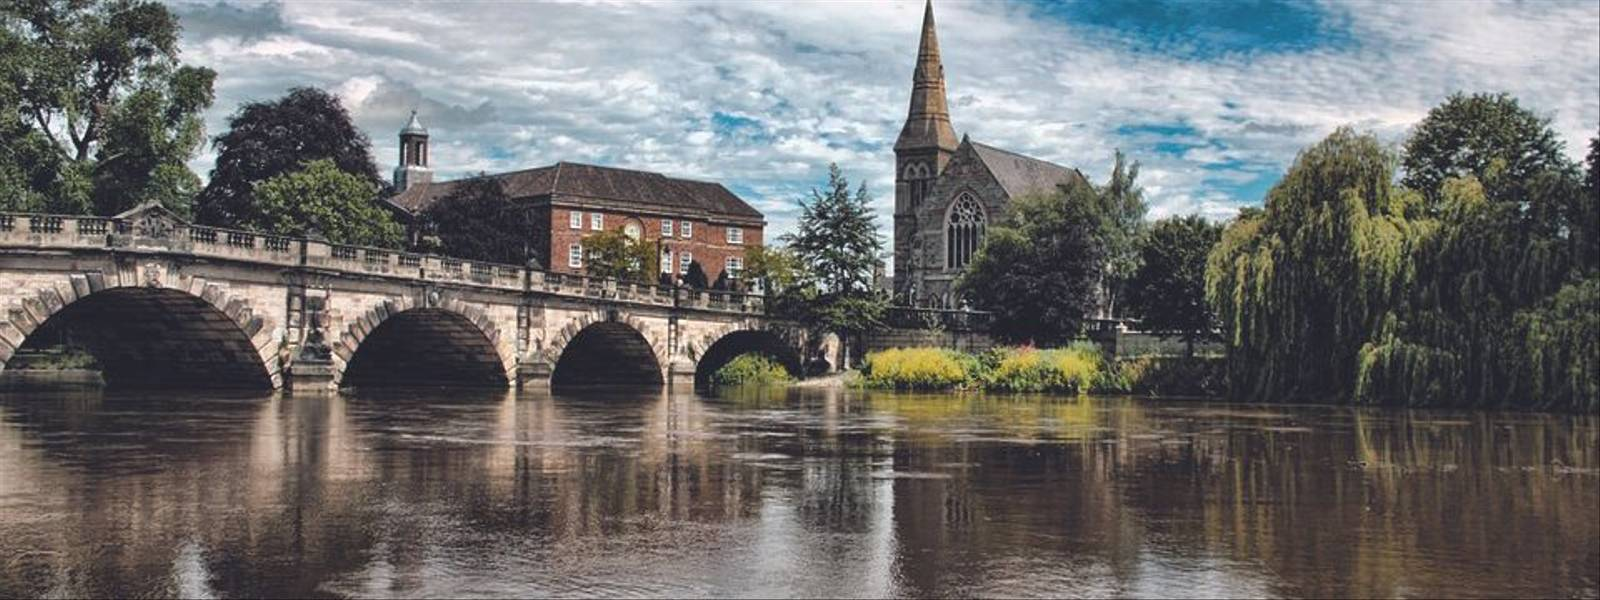 Church Stretton - Shrewsbury-1377319_960_720 Pixabay.jpg